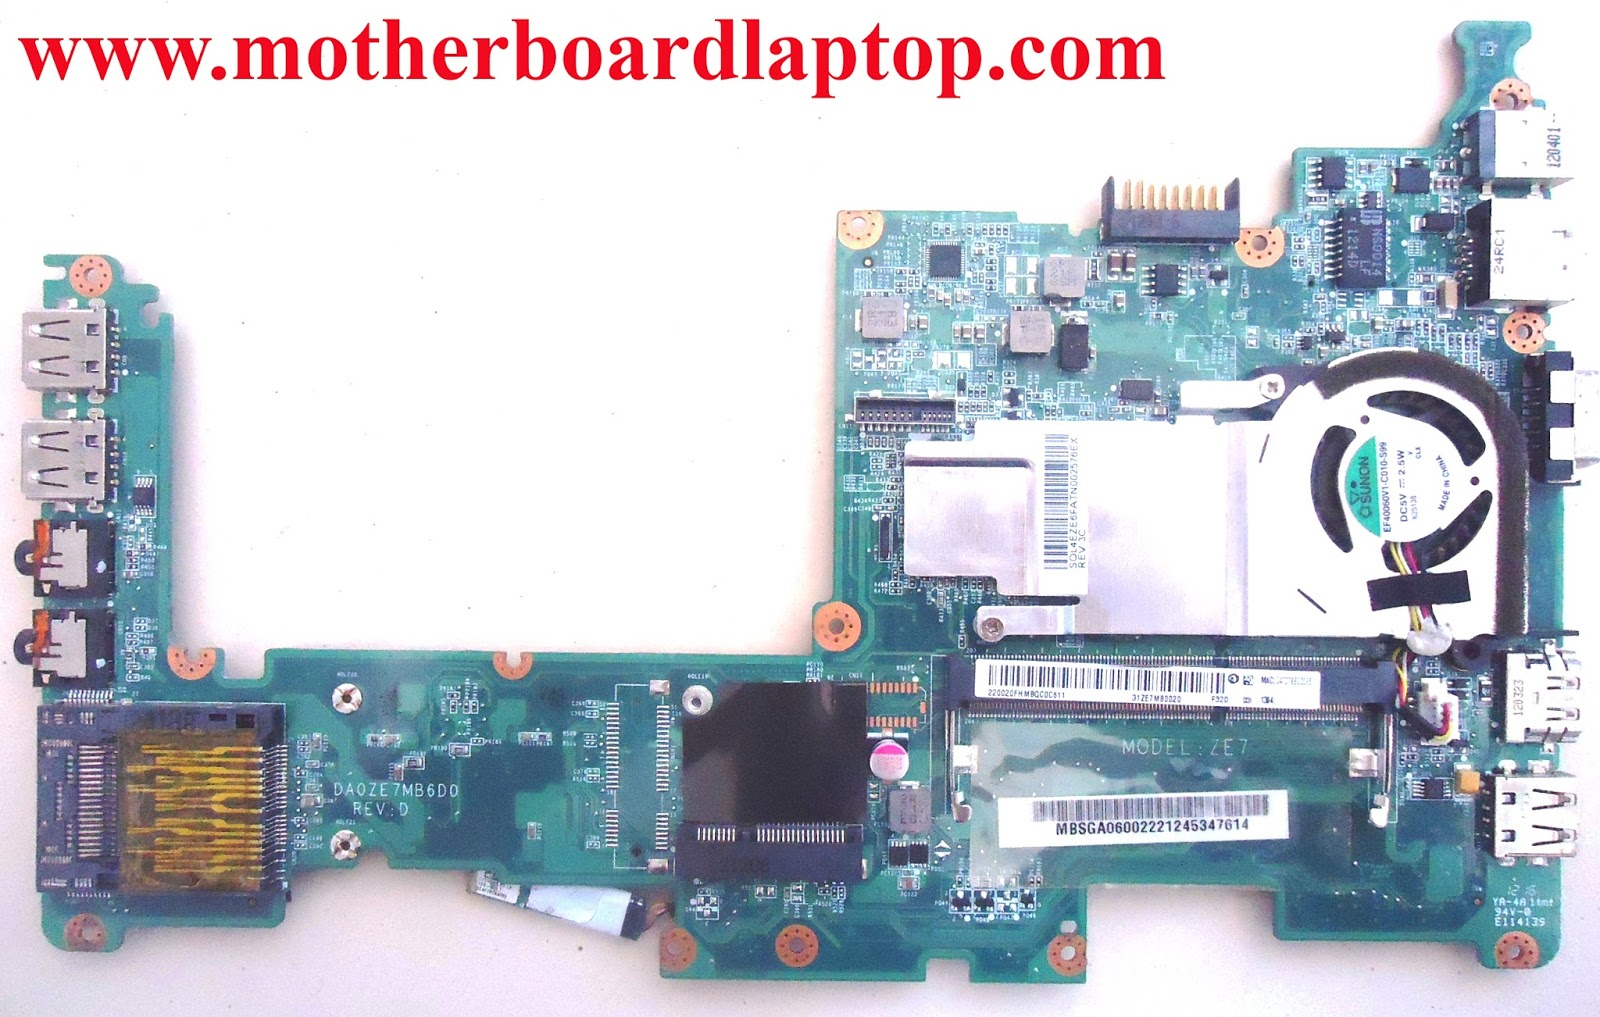 Motherboard Laptop Bekas Acer Aspire One D270